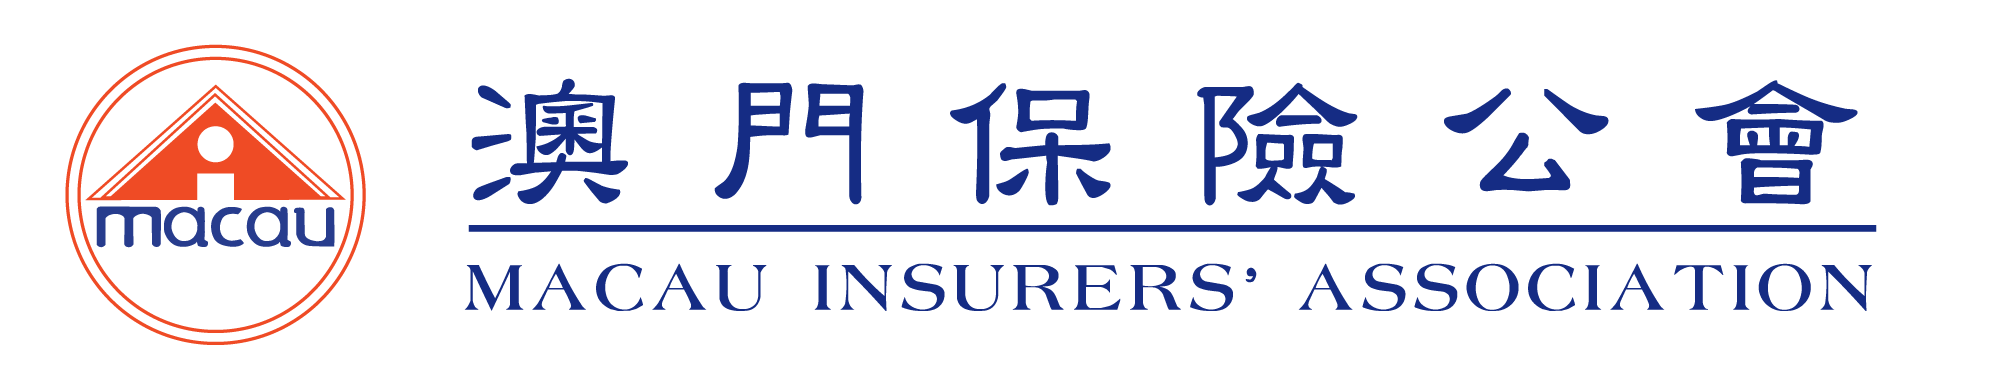 Macau Insurers' Association